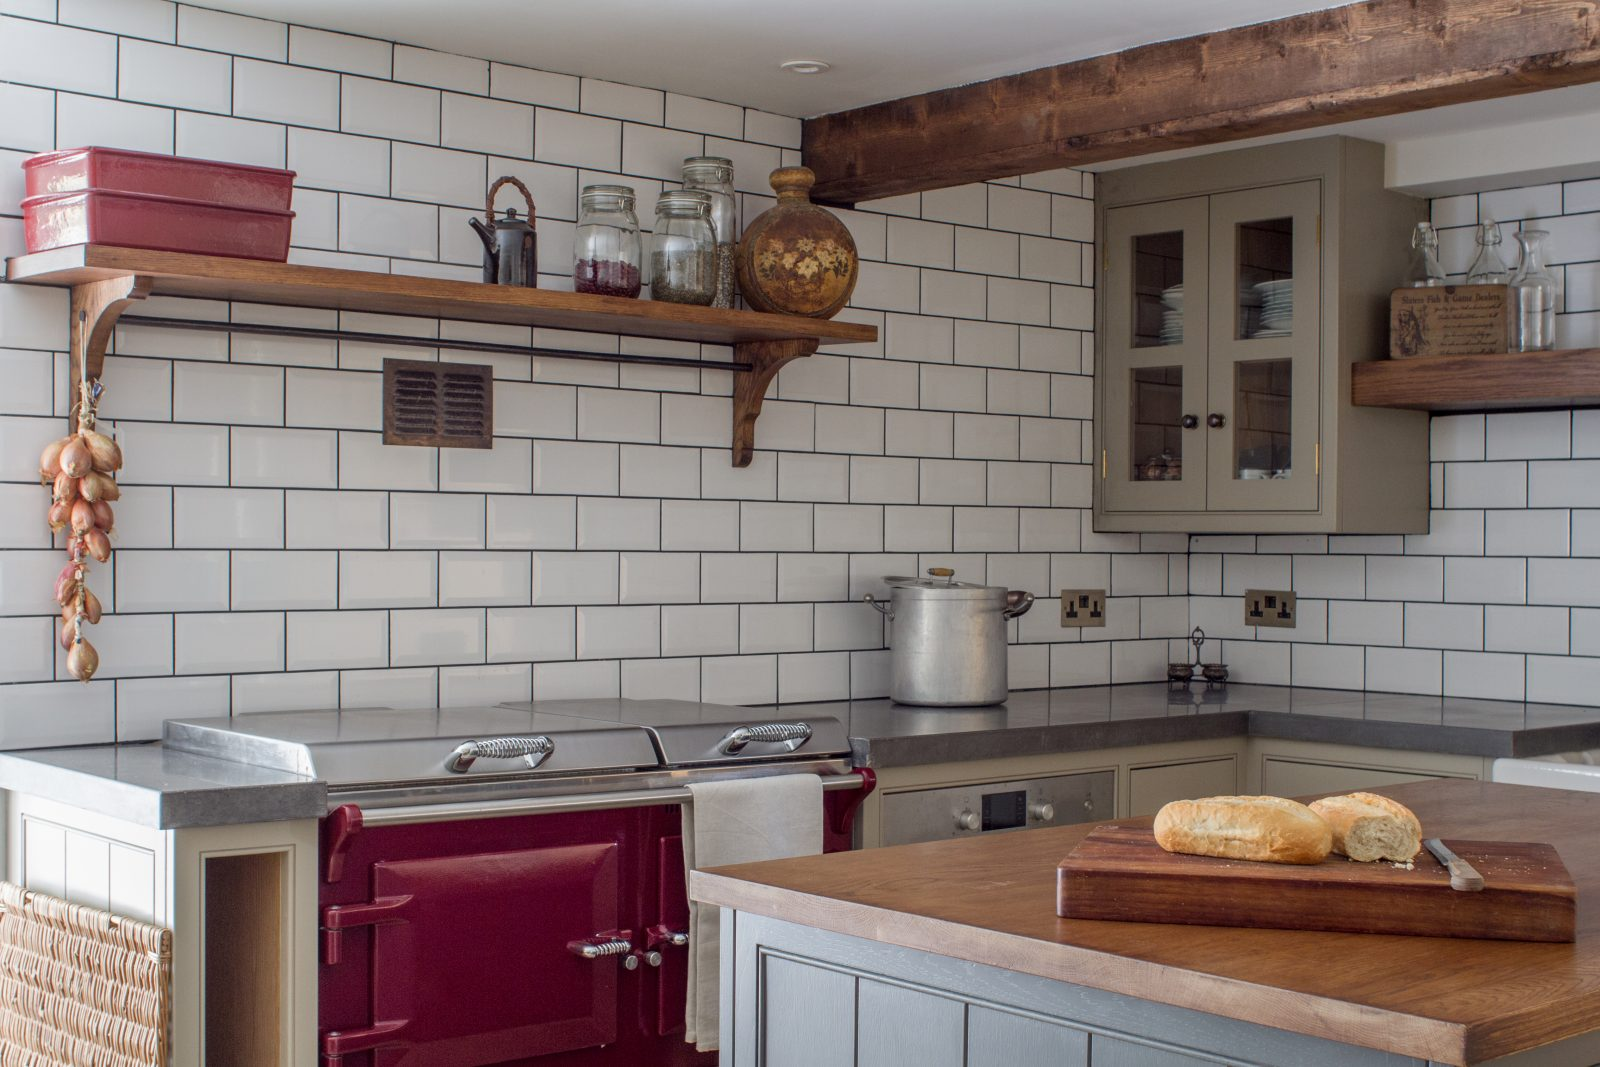 The cosy country cottage kitchen with traditional walls and authentic country cottage doors, with a shaker style kitchen with farmhouse sink and oak worktop.